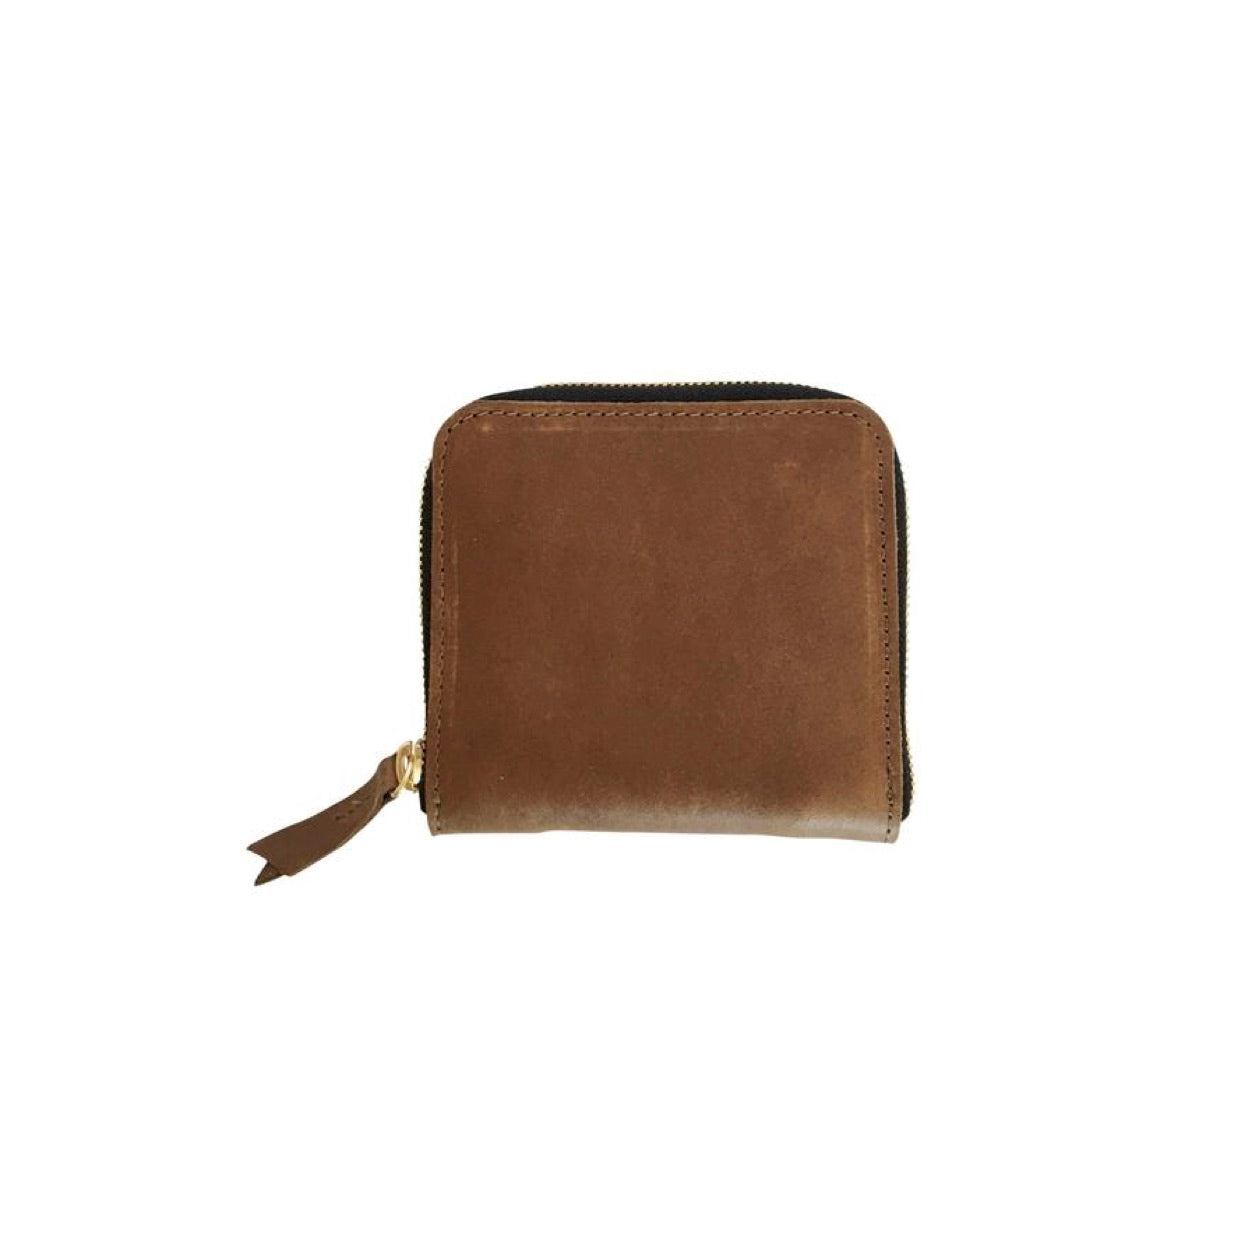 petite zippy wallet | brown